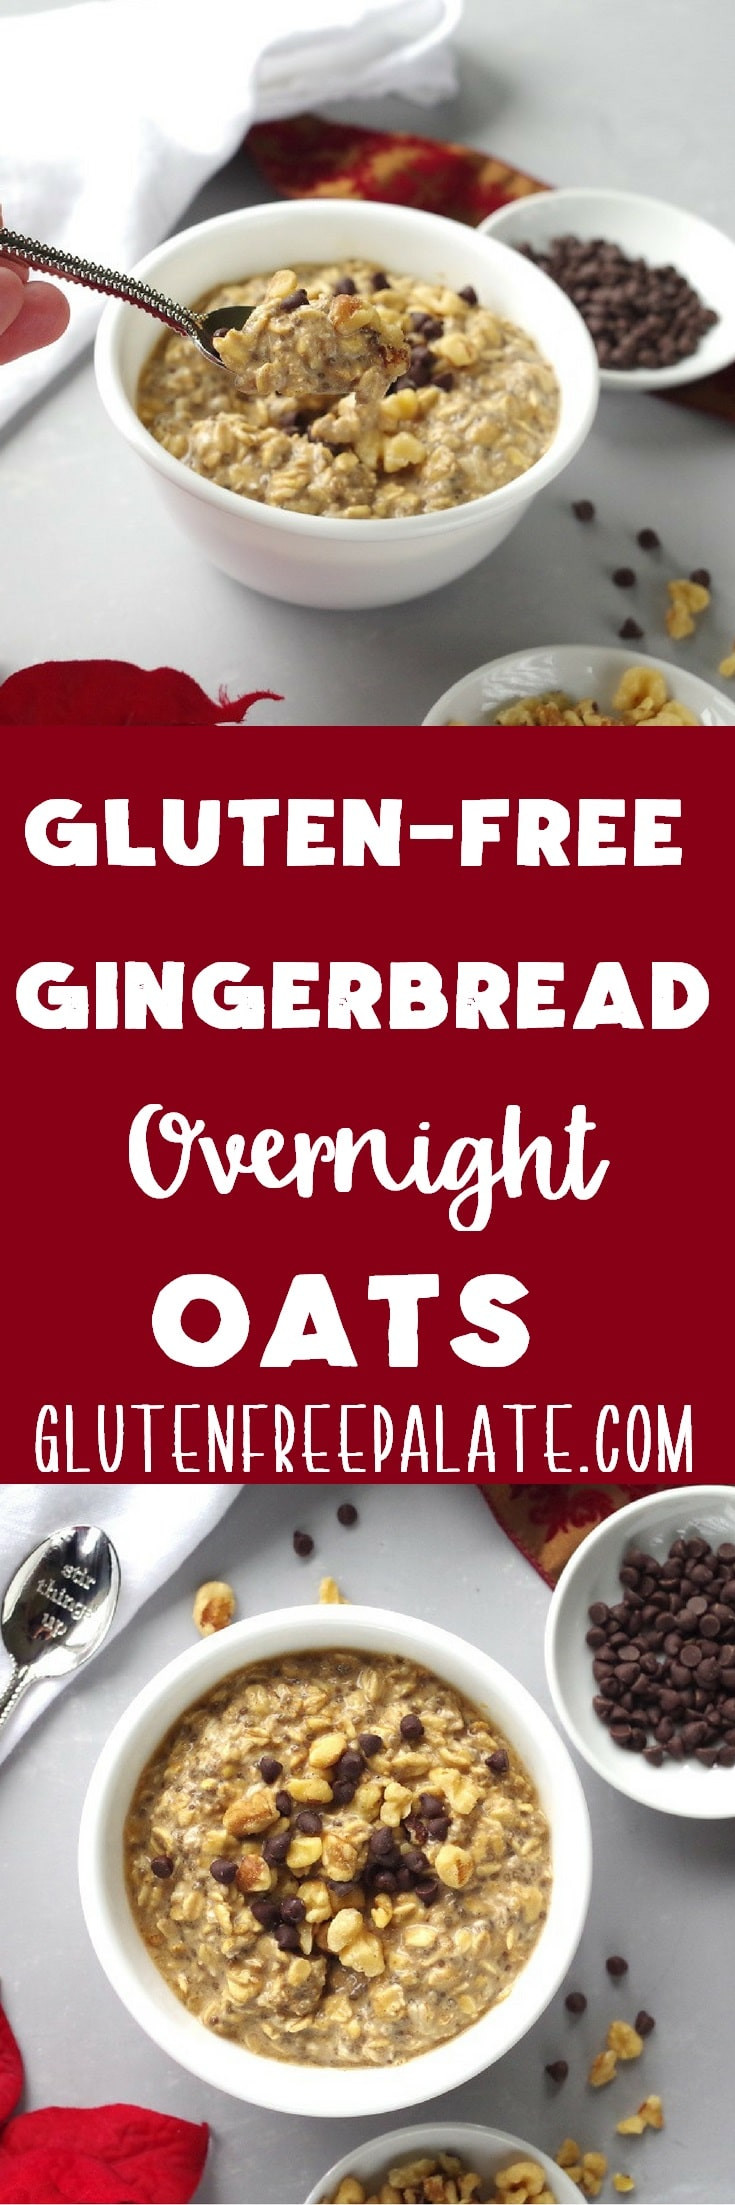 Dairy Free Overnight Oats  Gluten Free Gingerbread Overnight Oats